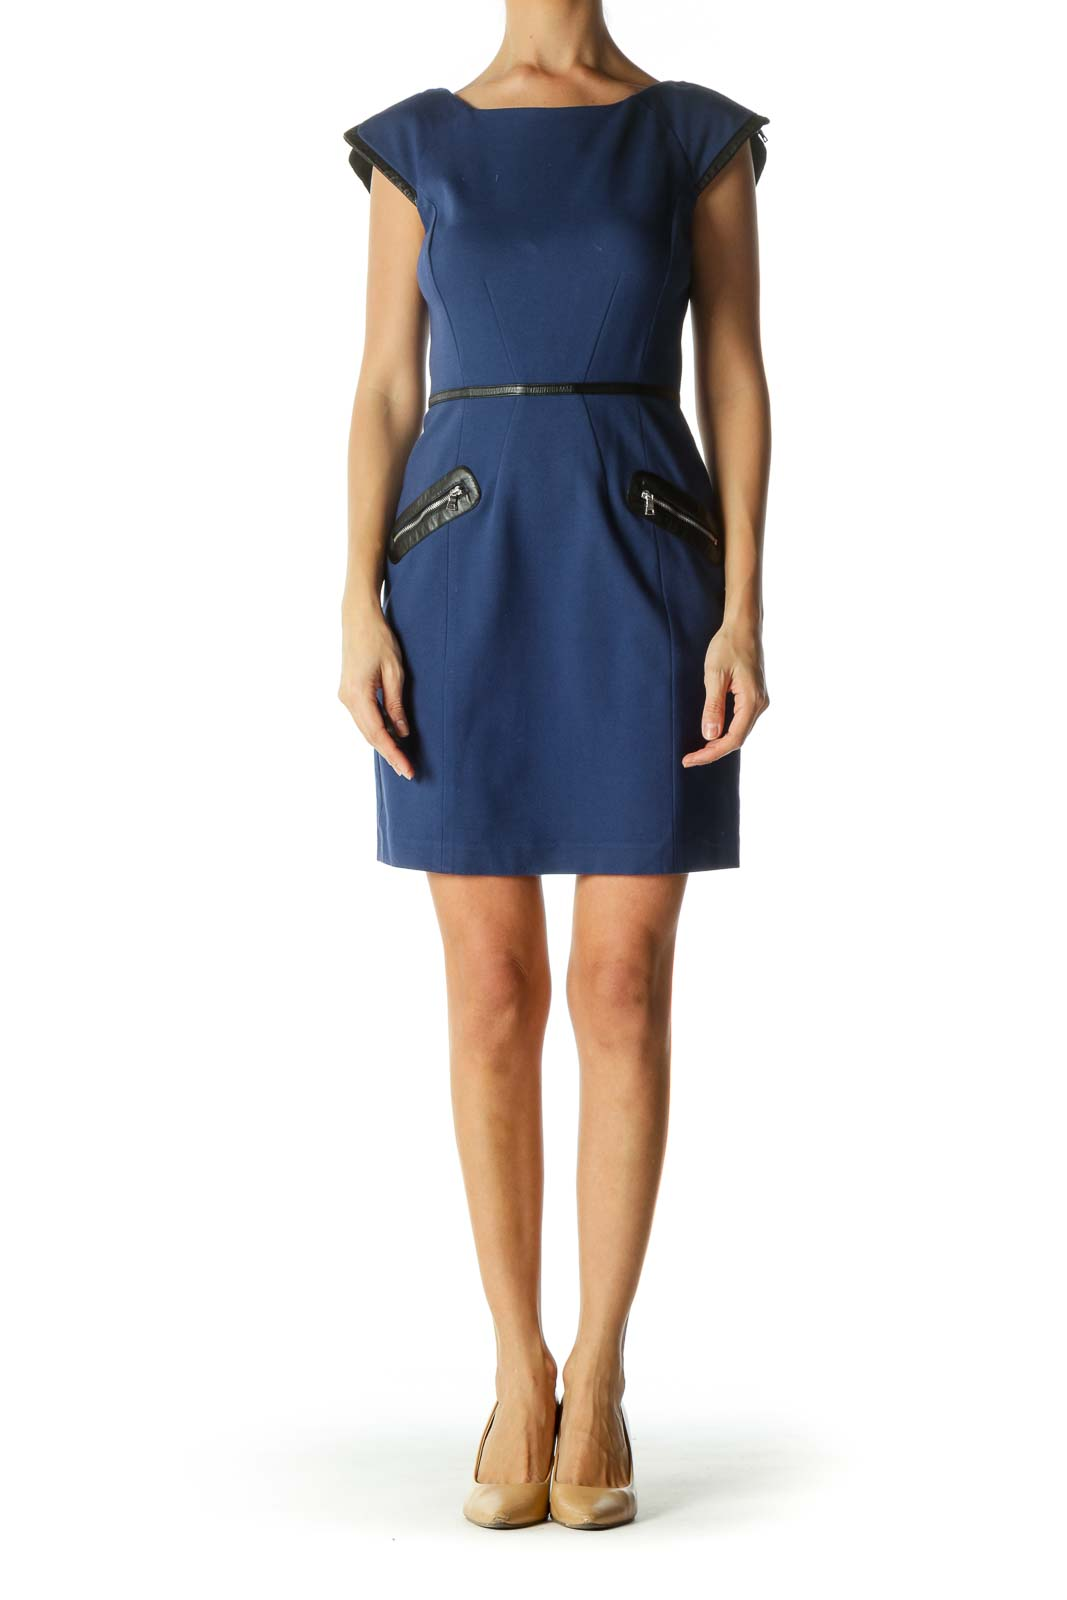 Blue and Black Zippered Back Sheath Dress